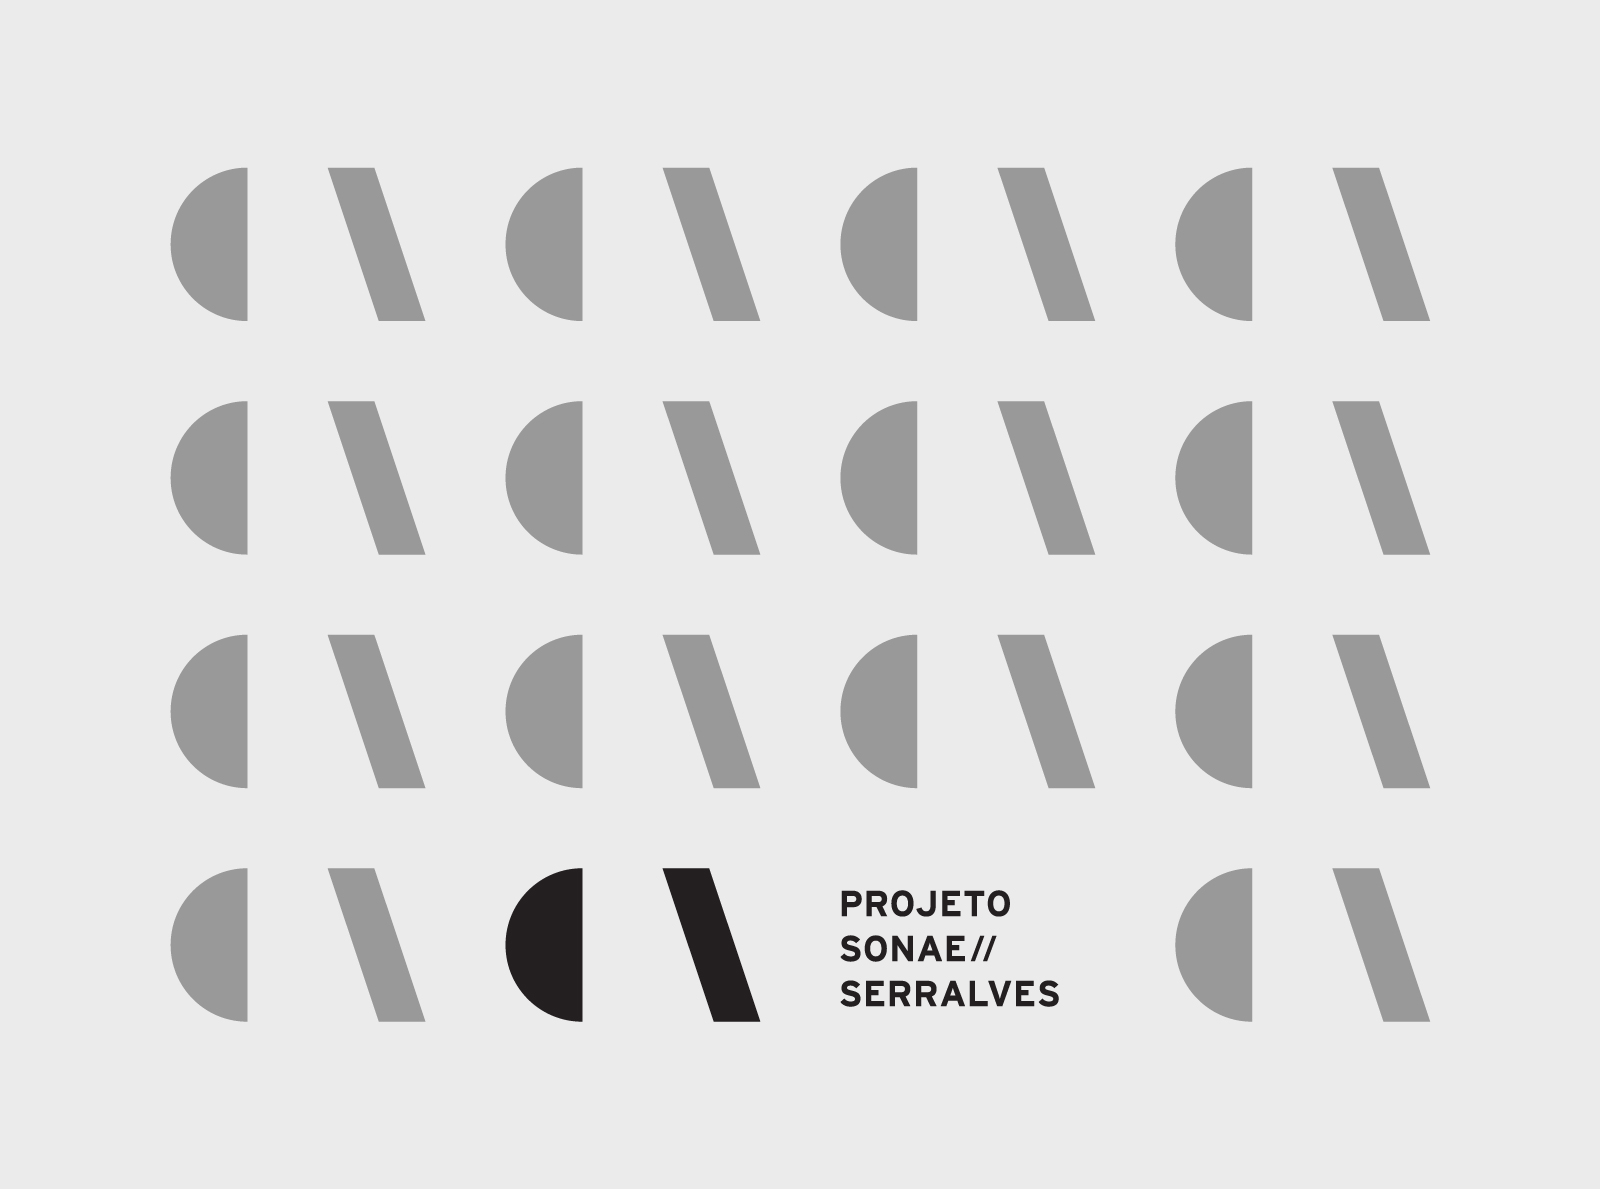 Projecto Sonae//Serralves ⟐ Logo and pattern